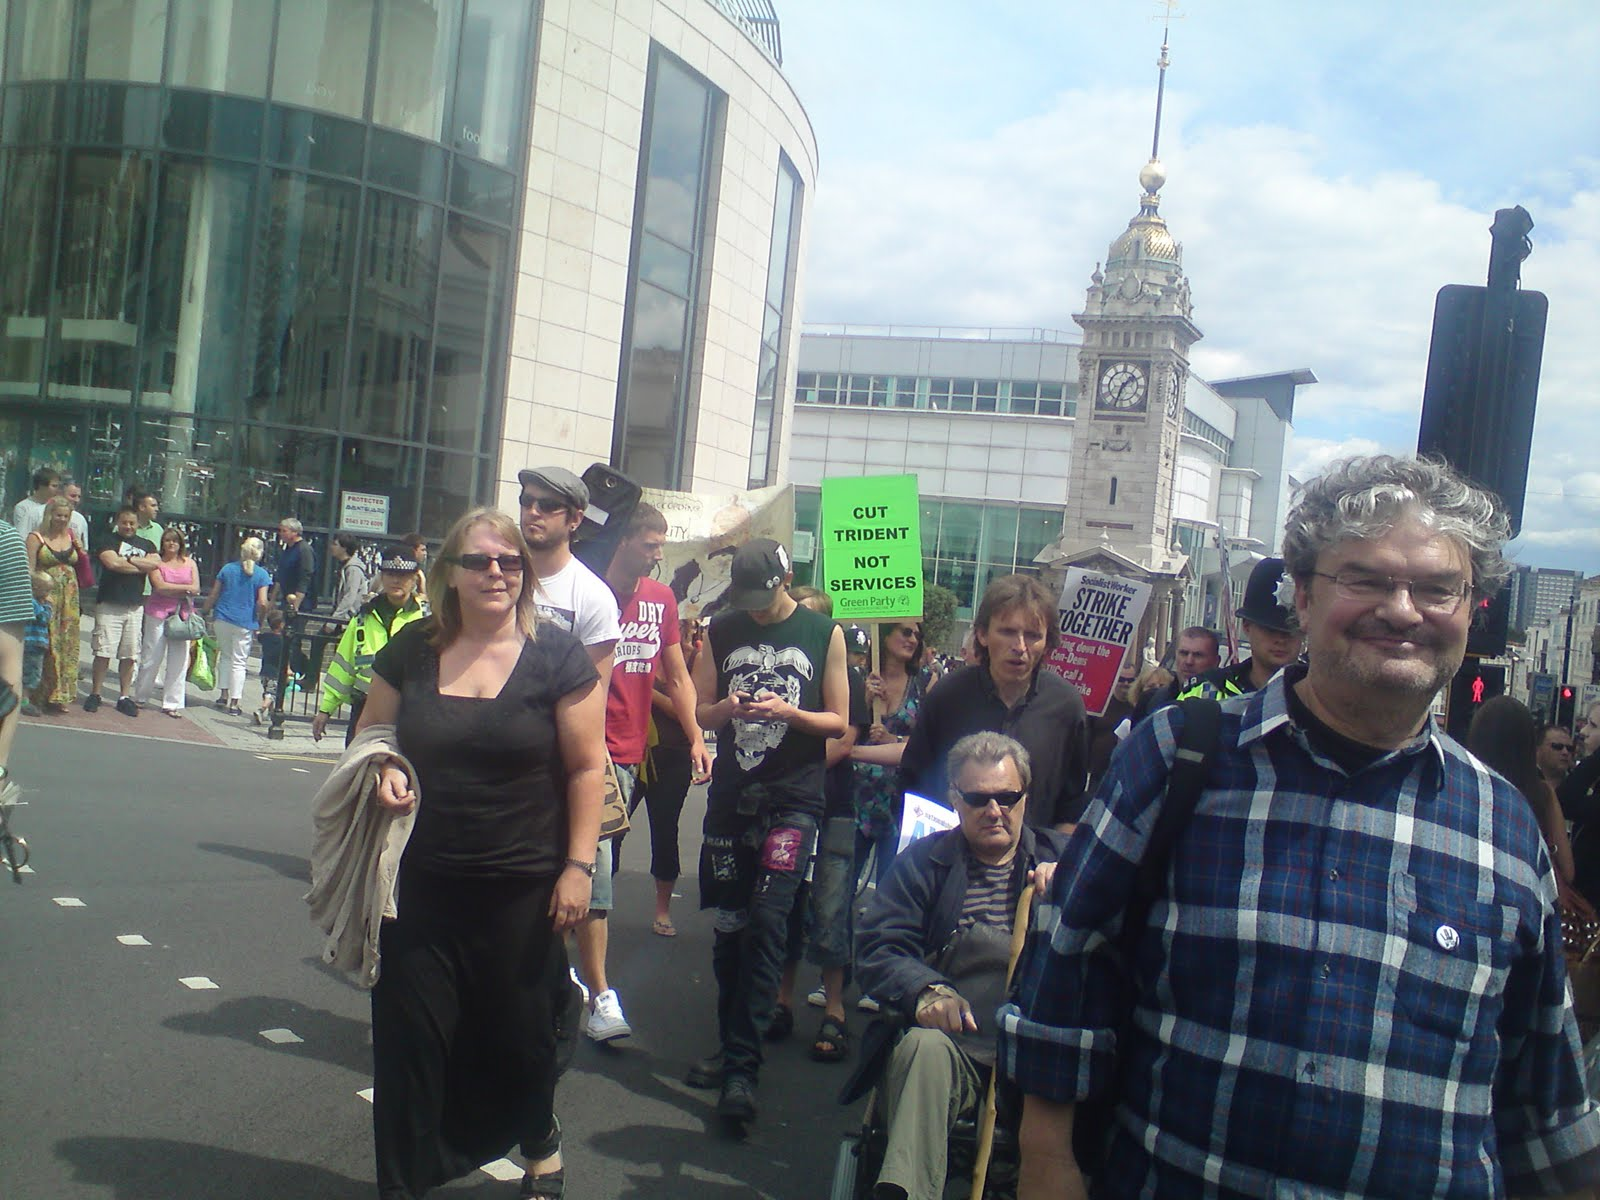 DPAC protestors march in Brighton against cuts